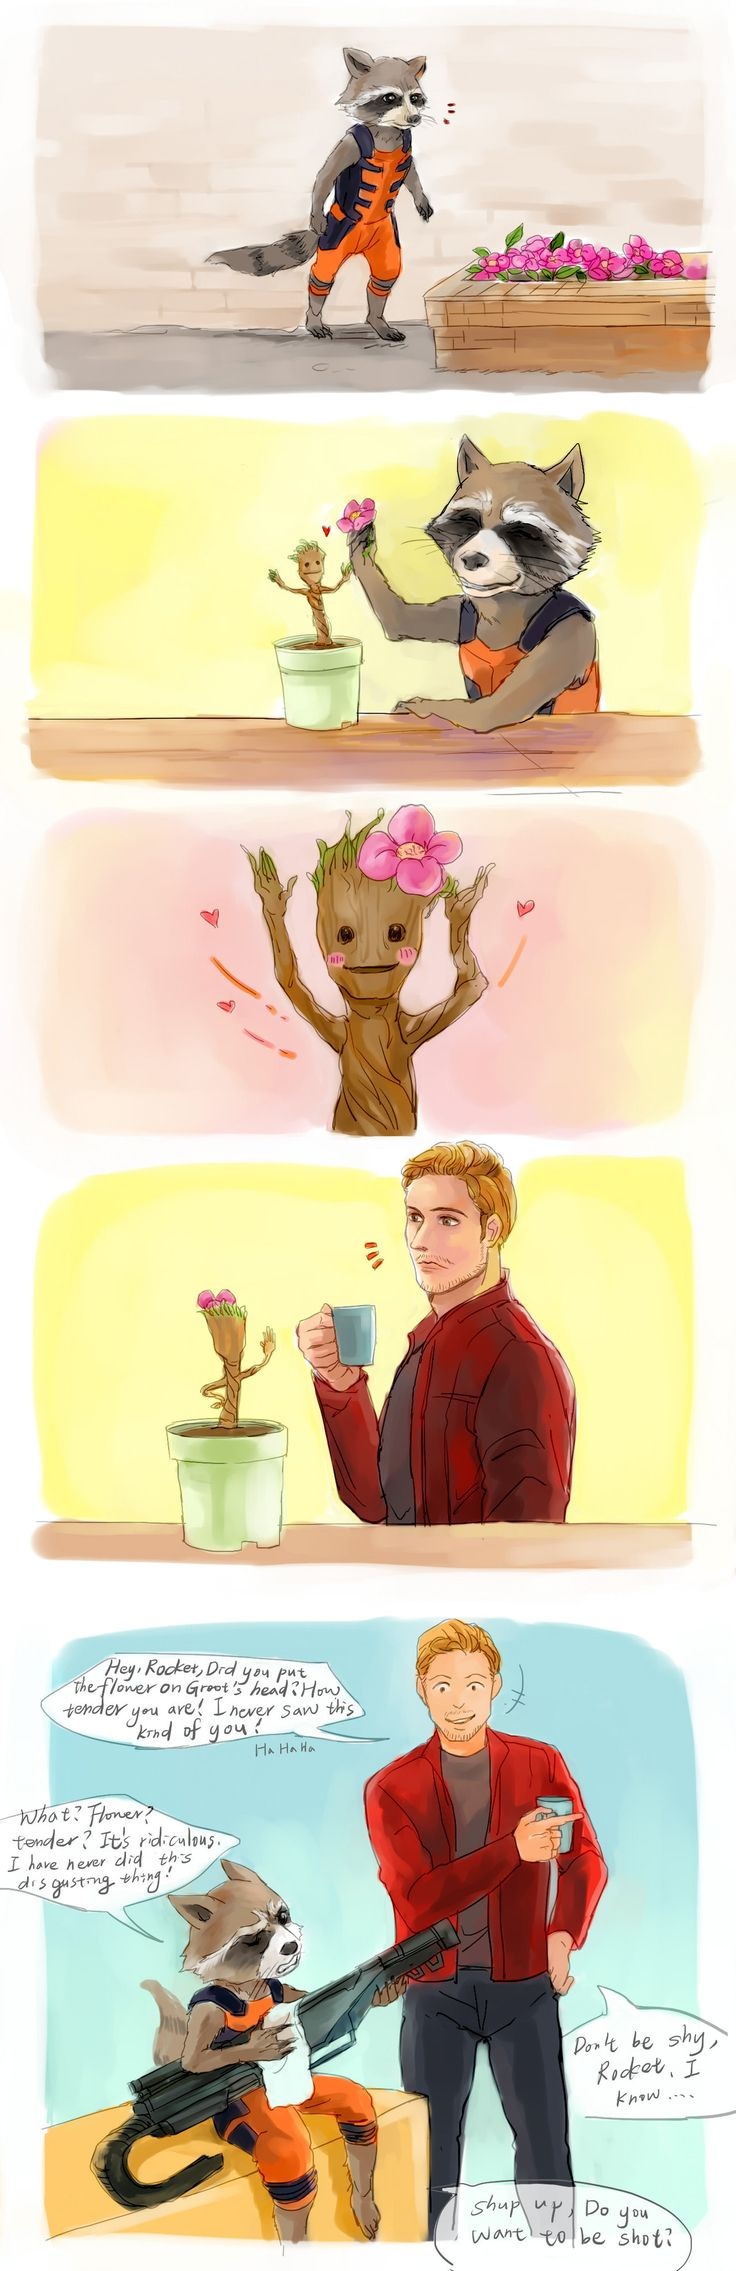 GOTG Rocket and Groot by fonin.deviantart.com on @deviantART